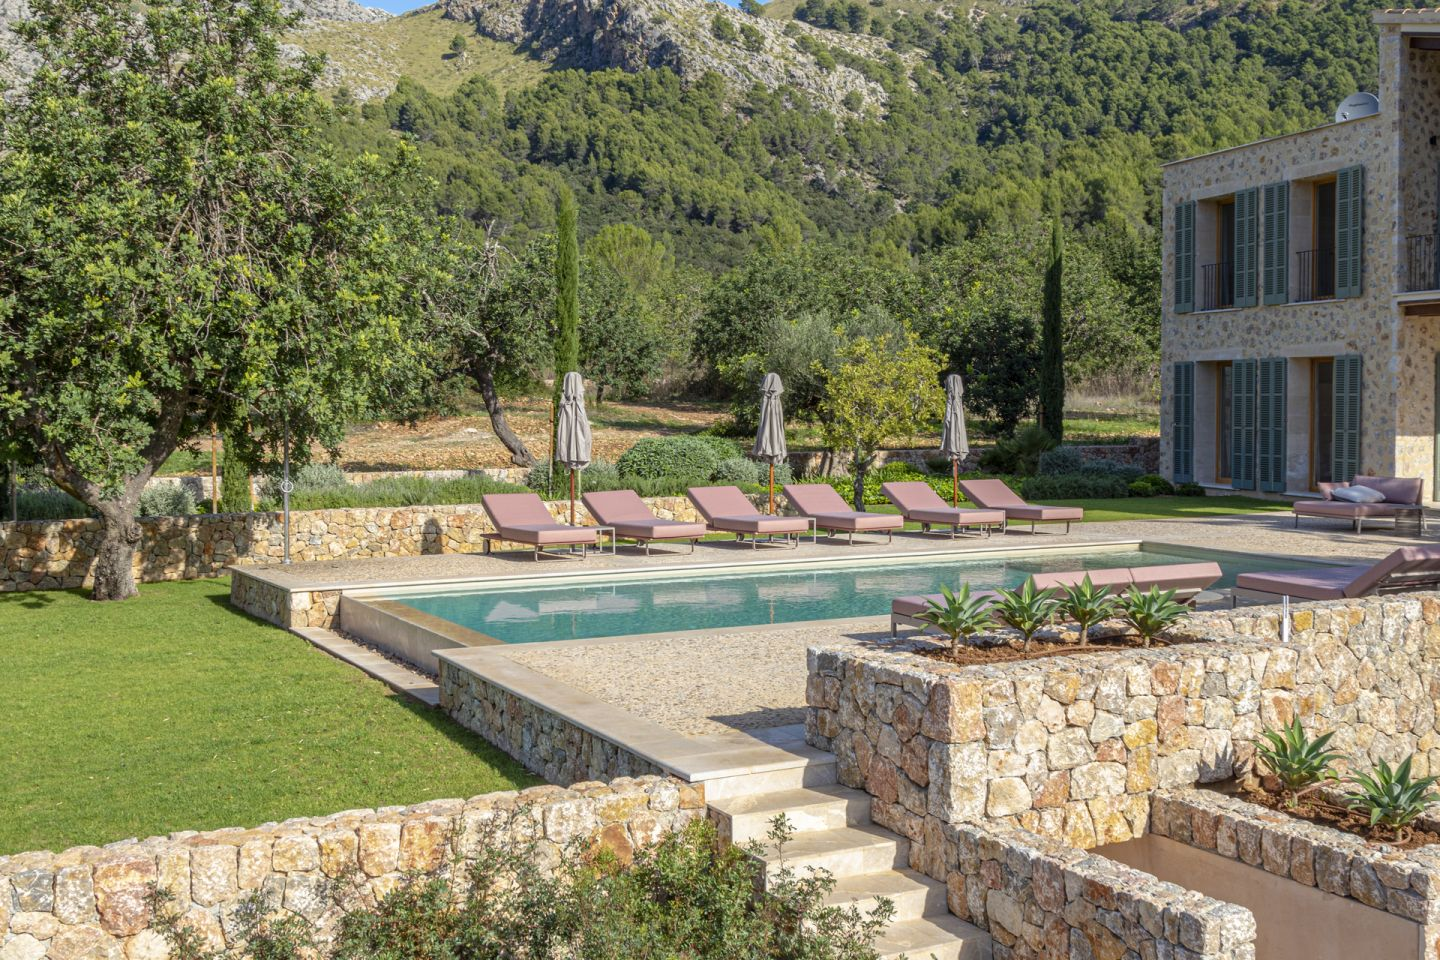 5 Bed Countryside House for sale in POLLENSA 20